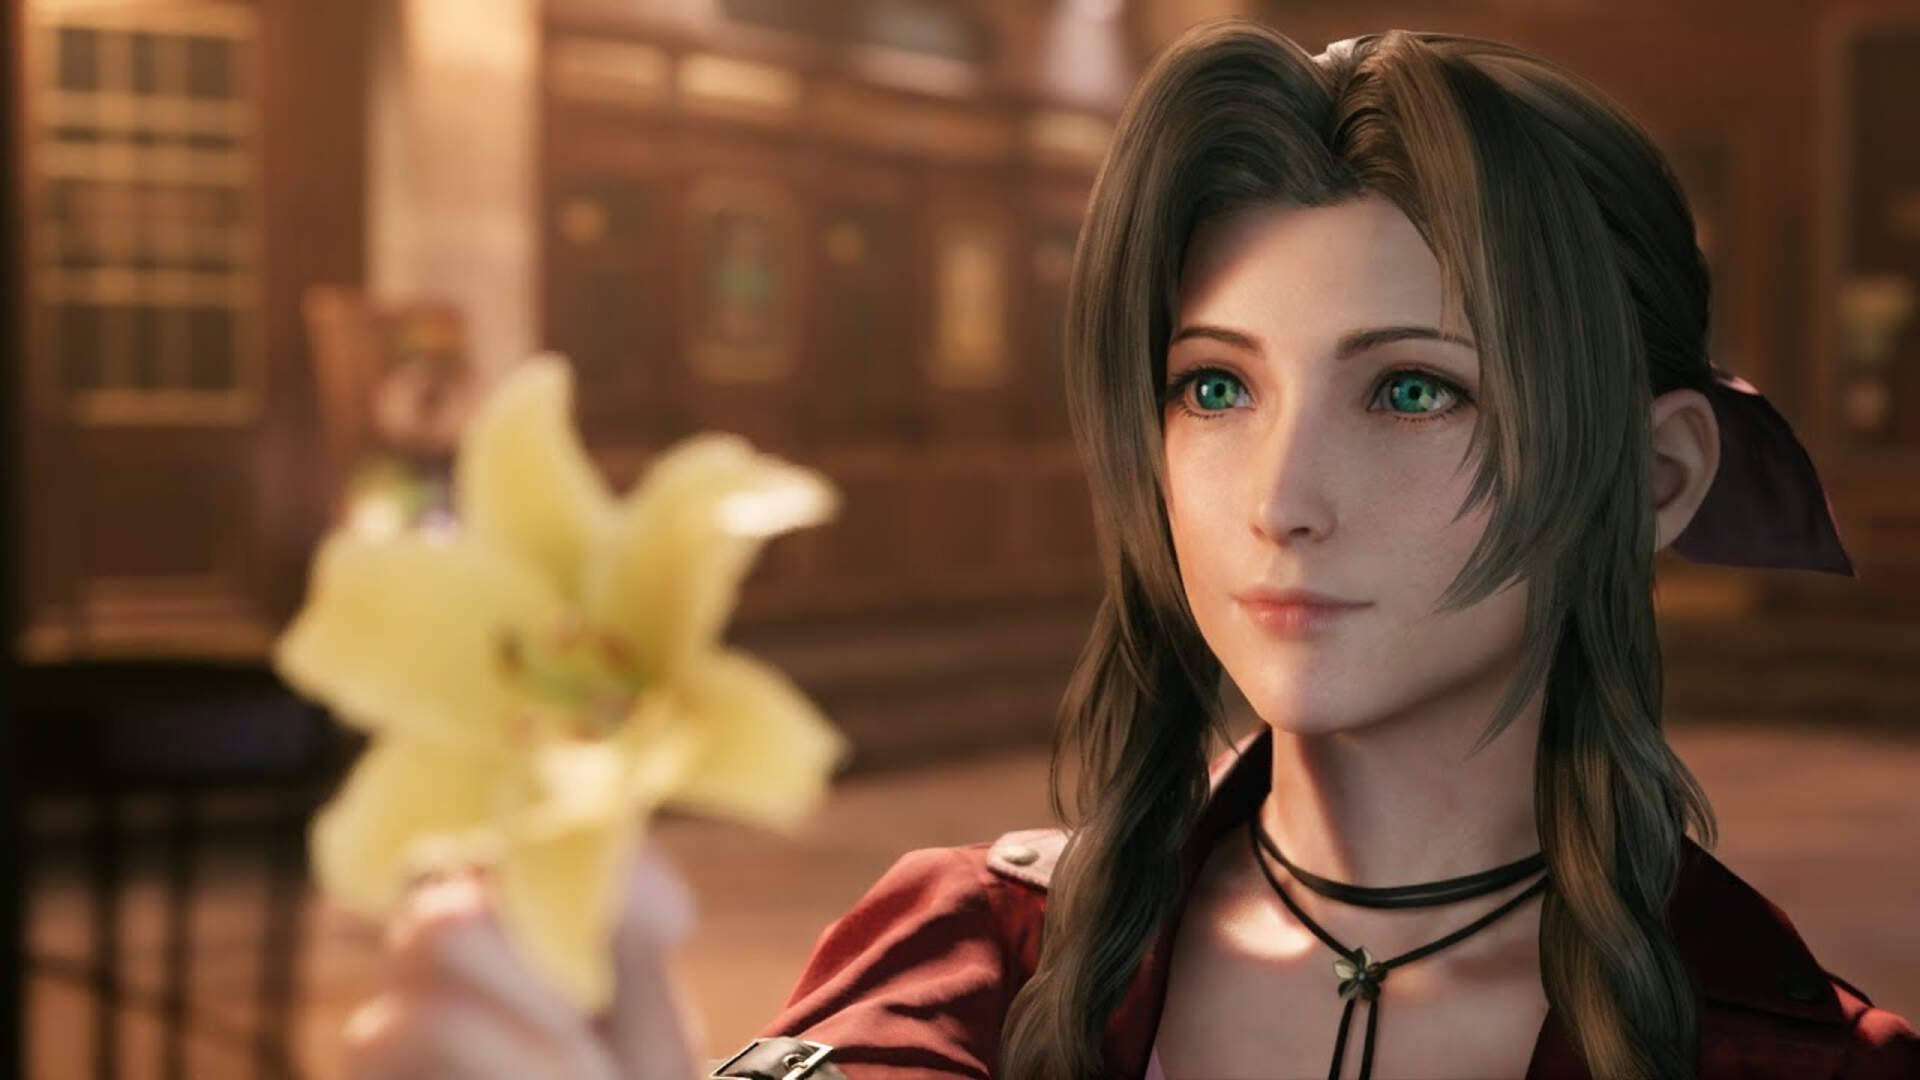 Final Fantasy 7 Remake Changes One of the Original's Most Iconic Scenes, and Not for the Better